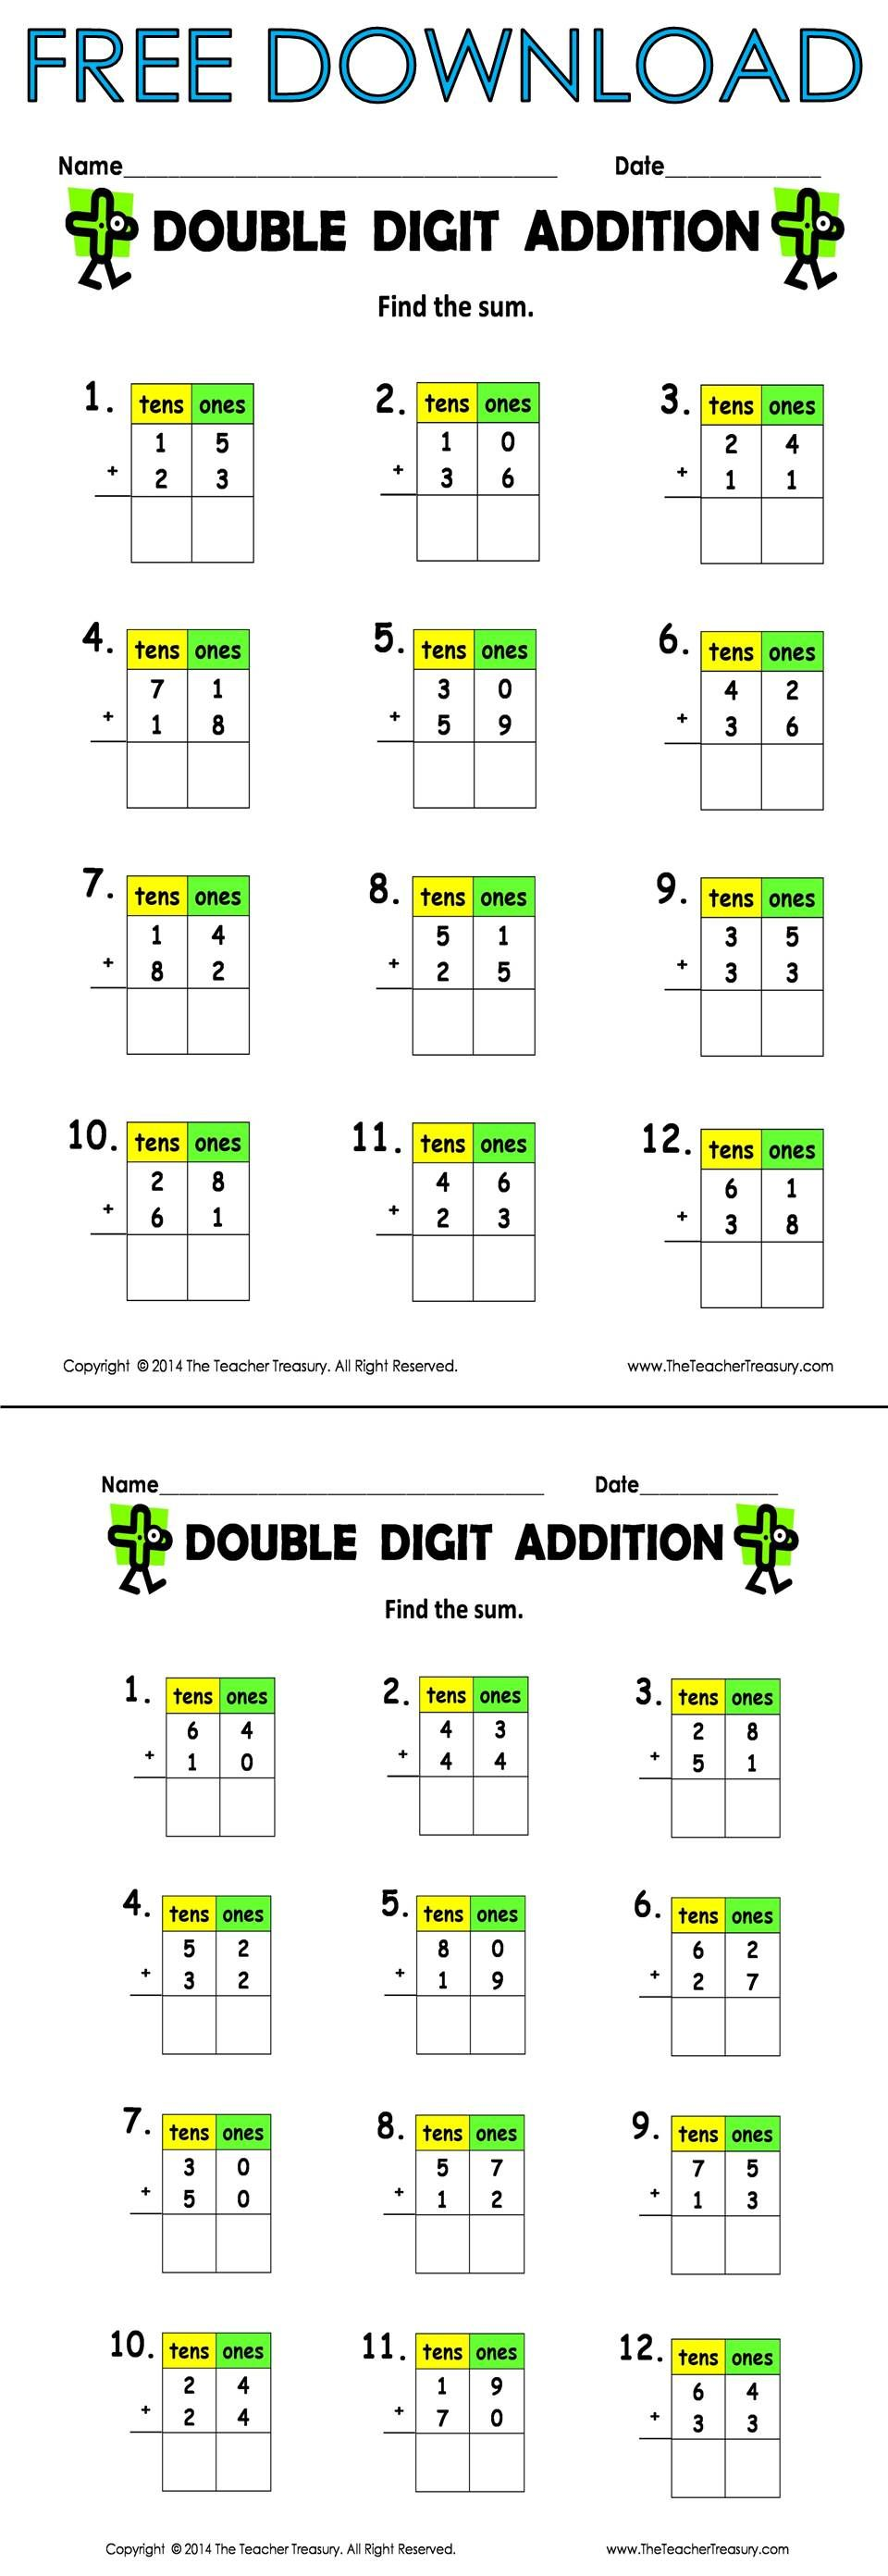 Free Double Digit Addition (without regrouping) 2 pages